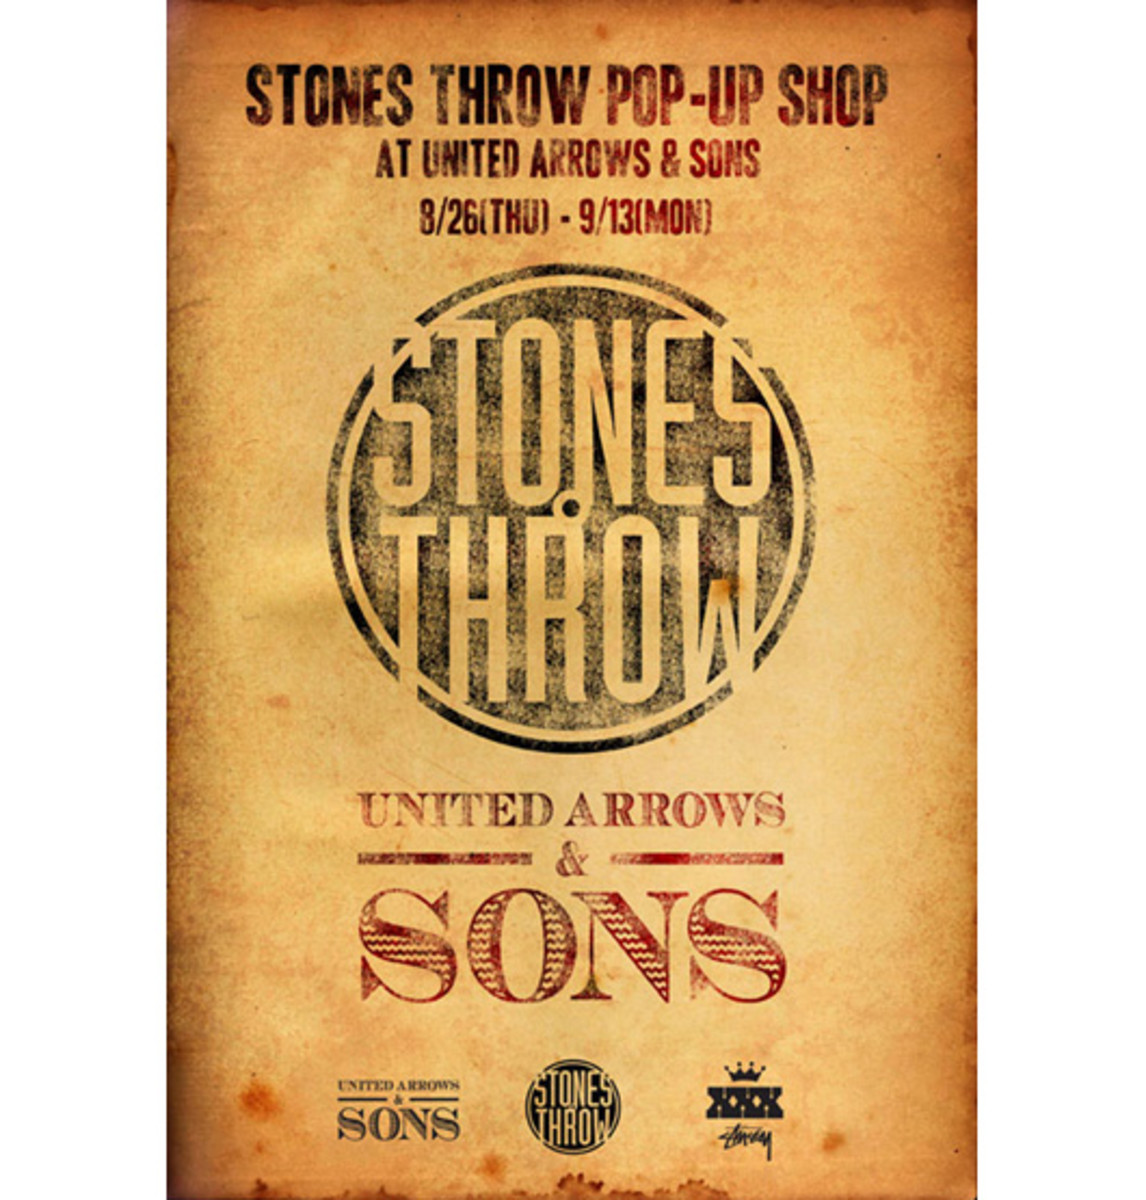 Stones Throw Pop Up Shop